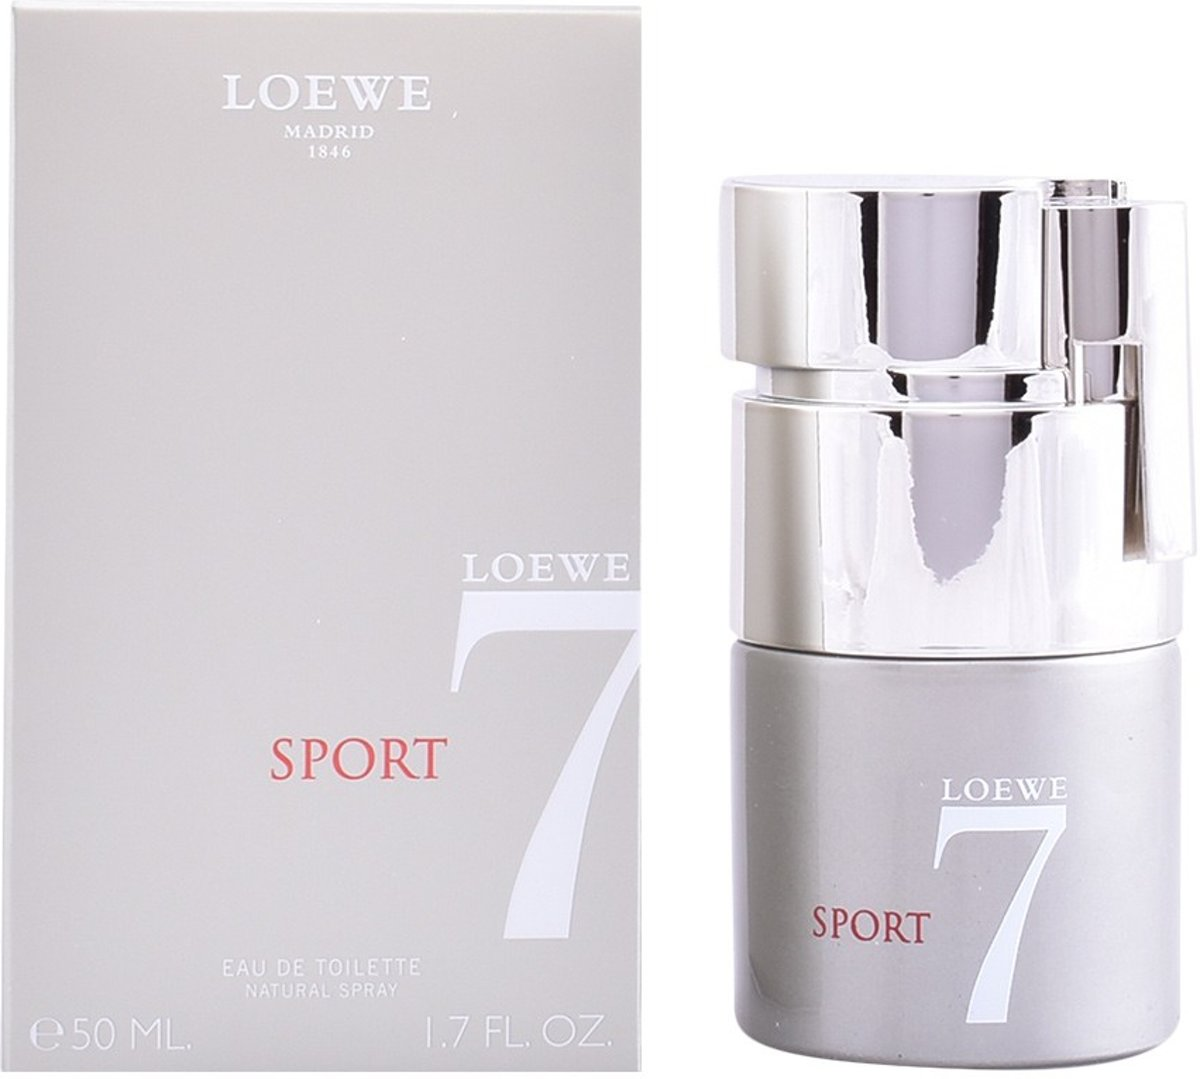 MULTI BUNDEL 2 stuks LOEWE 7 SPORT Eau de Toilette Spray 50 ml